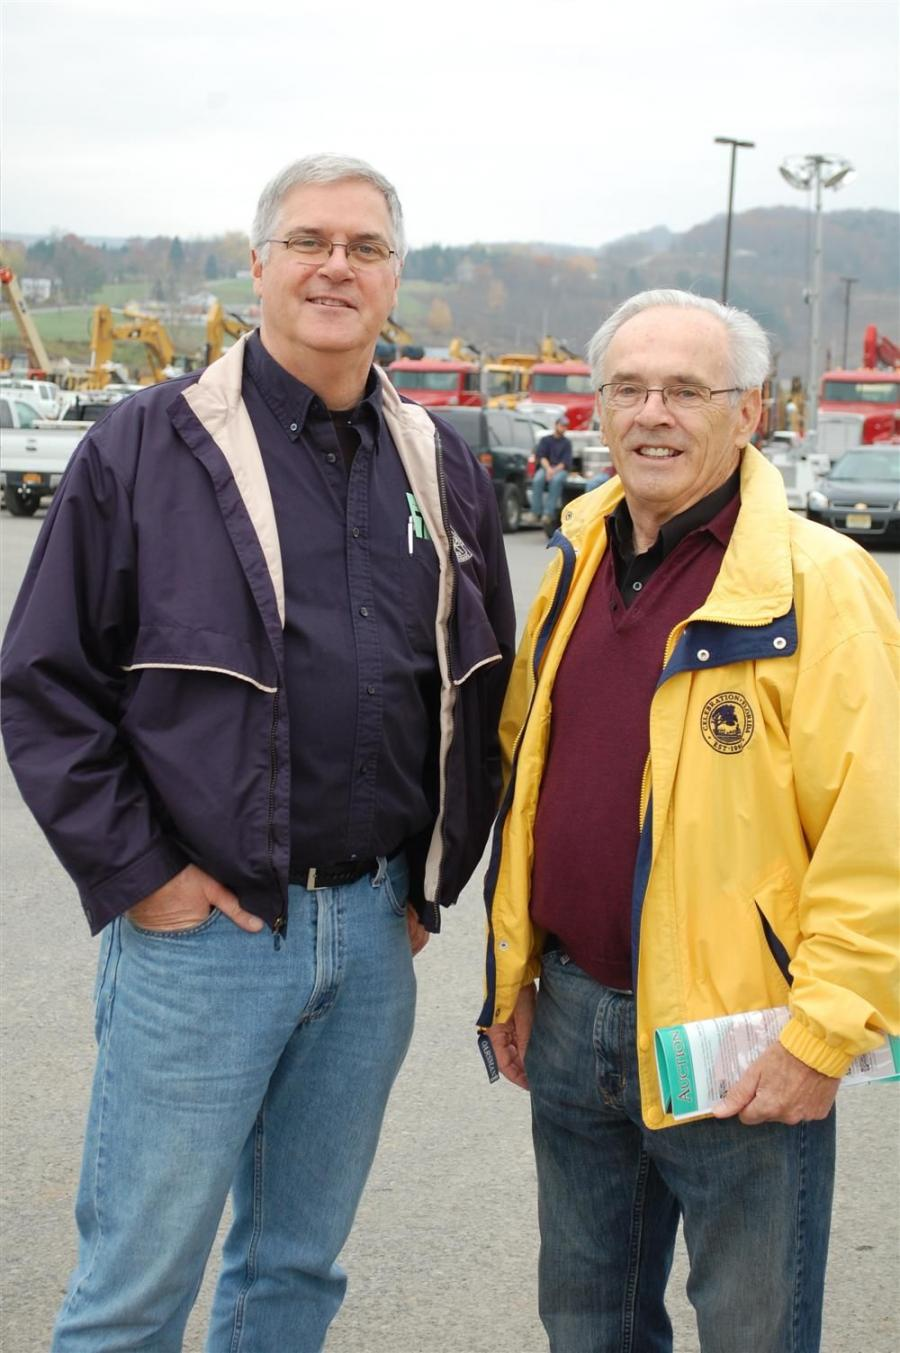 Gerard Calamari (L), president of Contractors Sales in Albany, N.Y,. and Murf Murphy, president of Best Tractor in Syracuse, N.Y., discuss trends in the used equipment market.